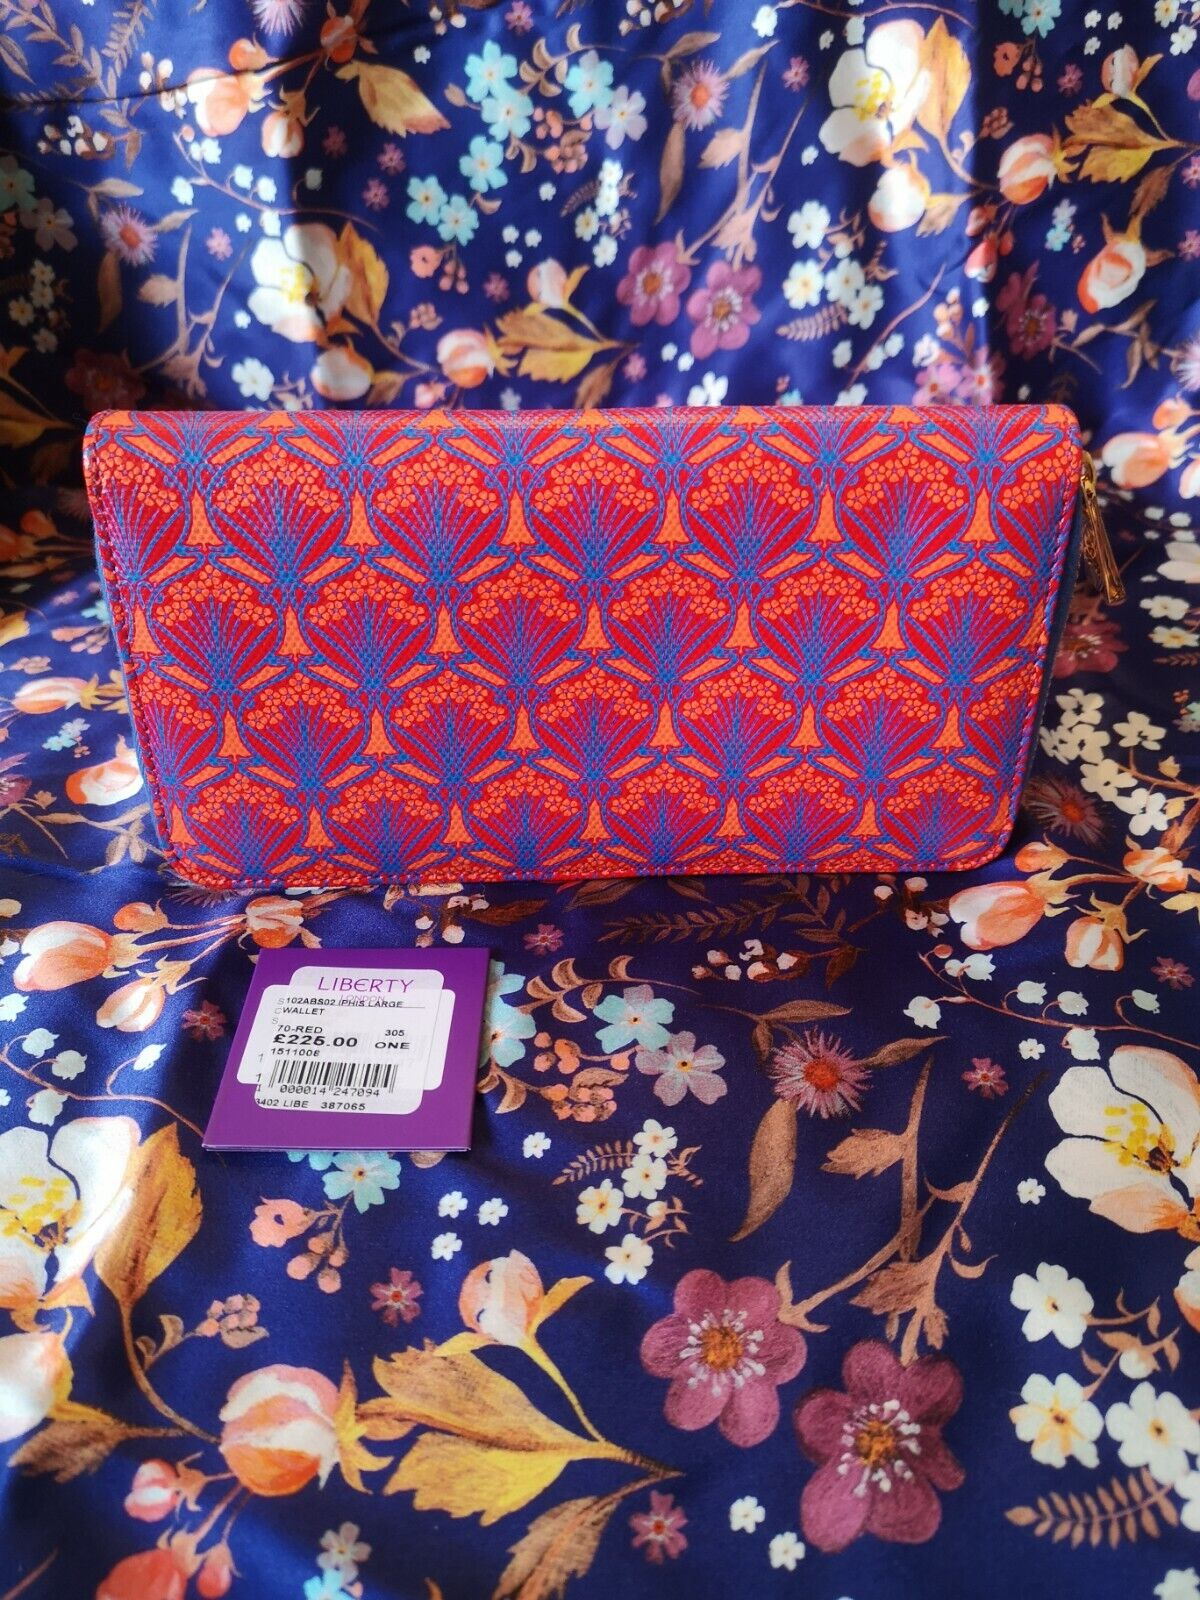 Liberty Iphis Large Wallet Red Orange Blue RRP 225